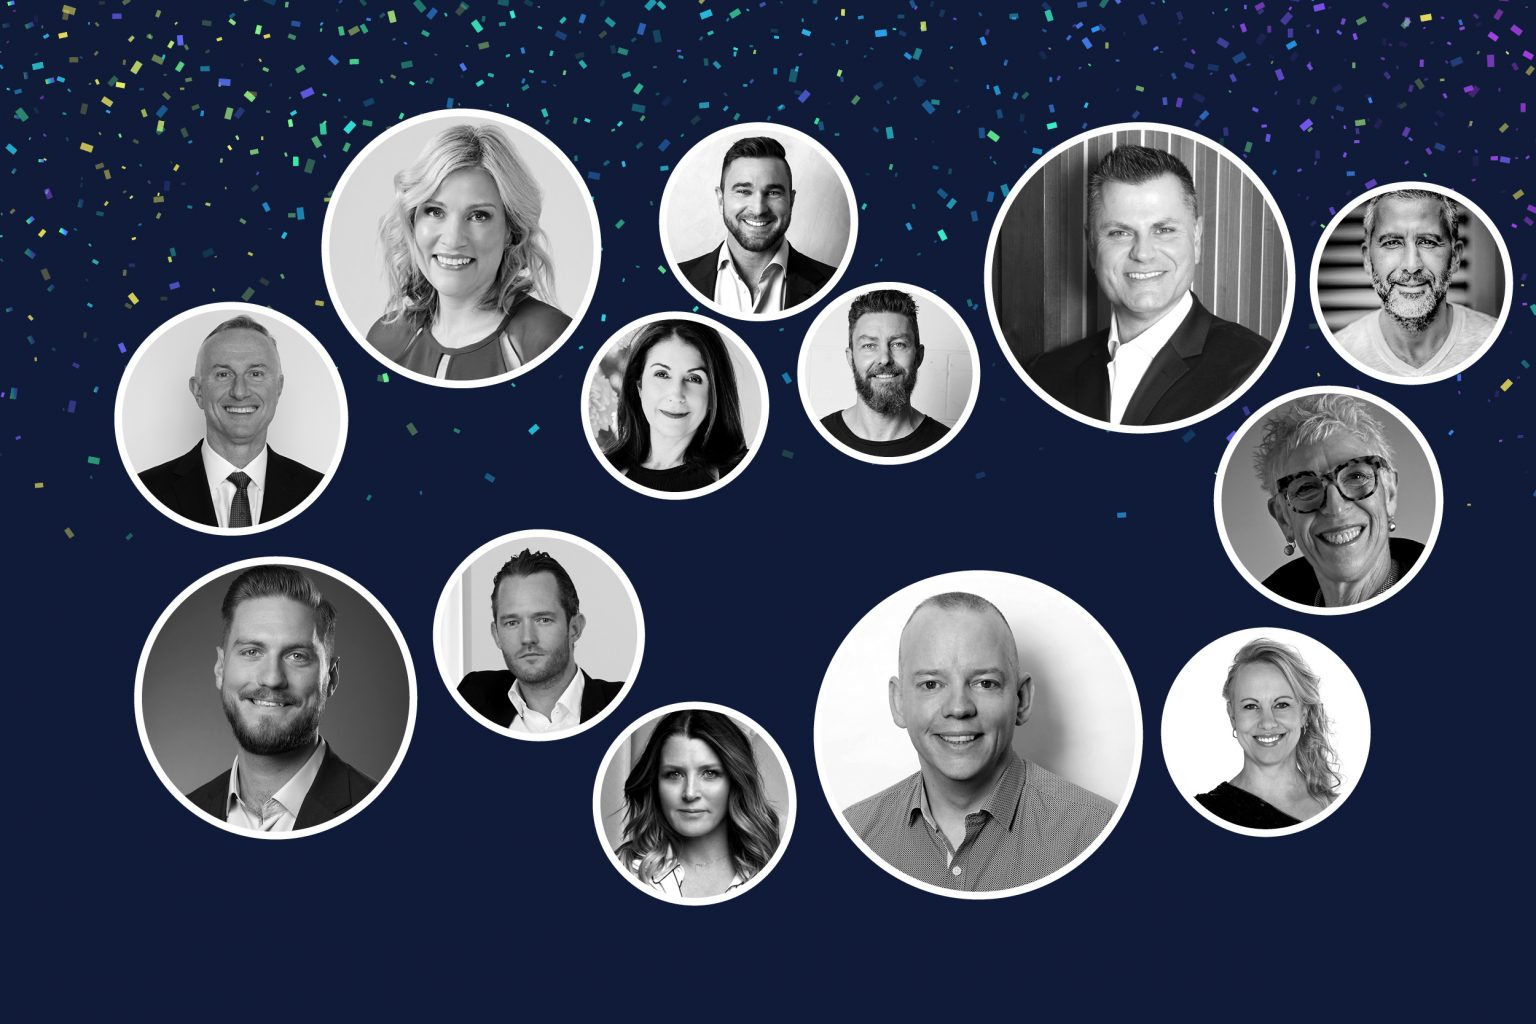 2021 Executive of the Year Awards judges